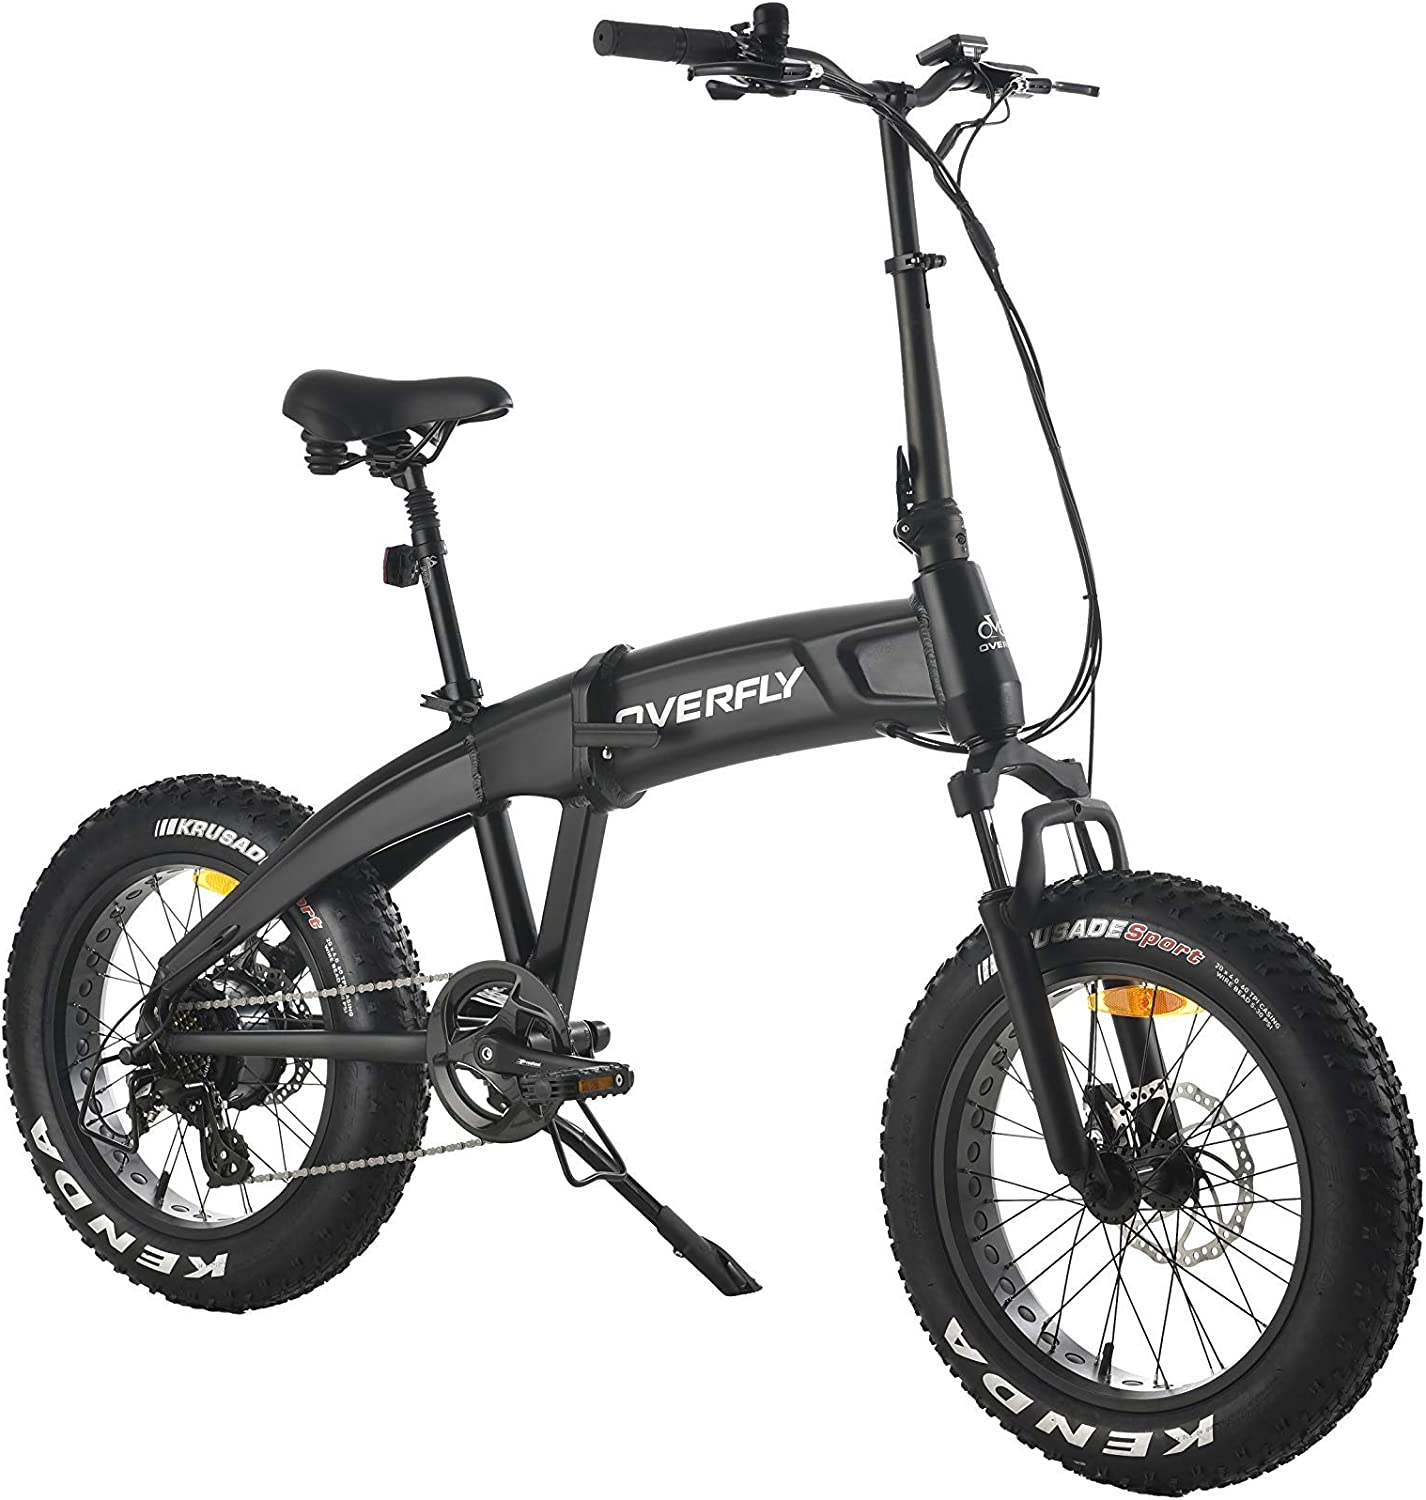 Overfly Hummer Max 79% OFF 20